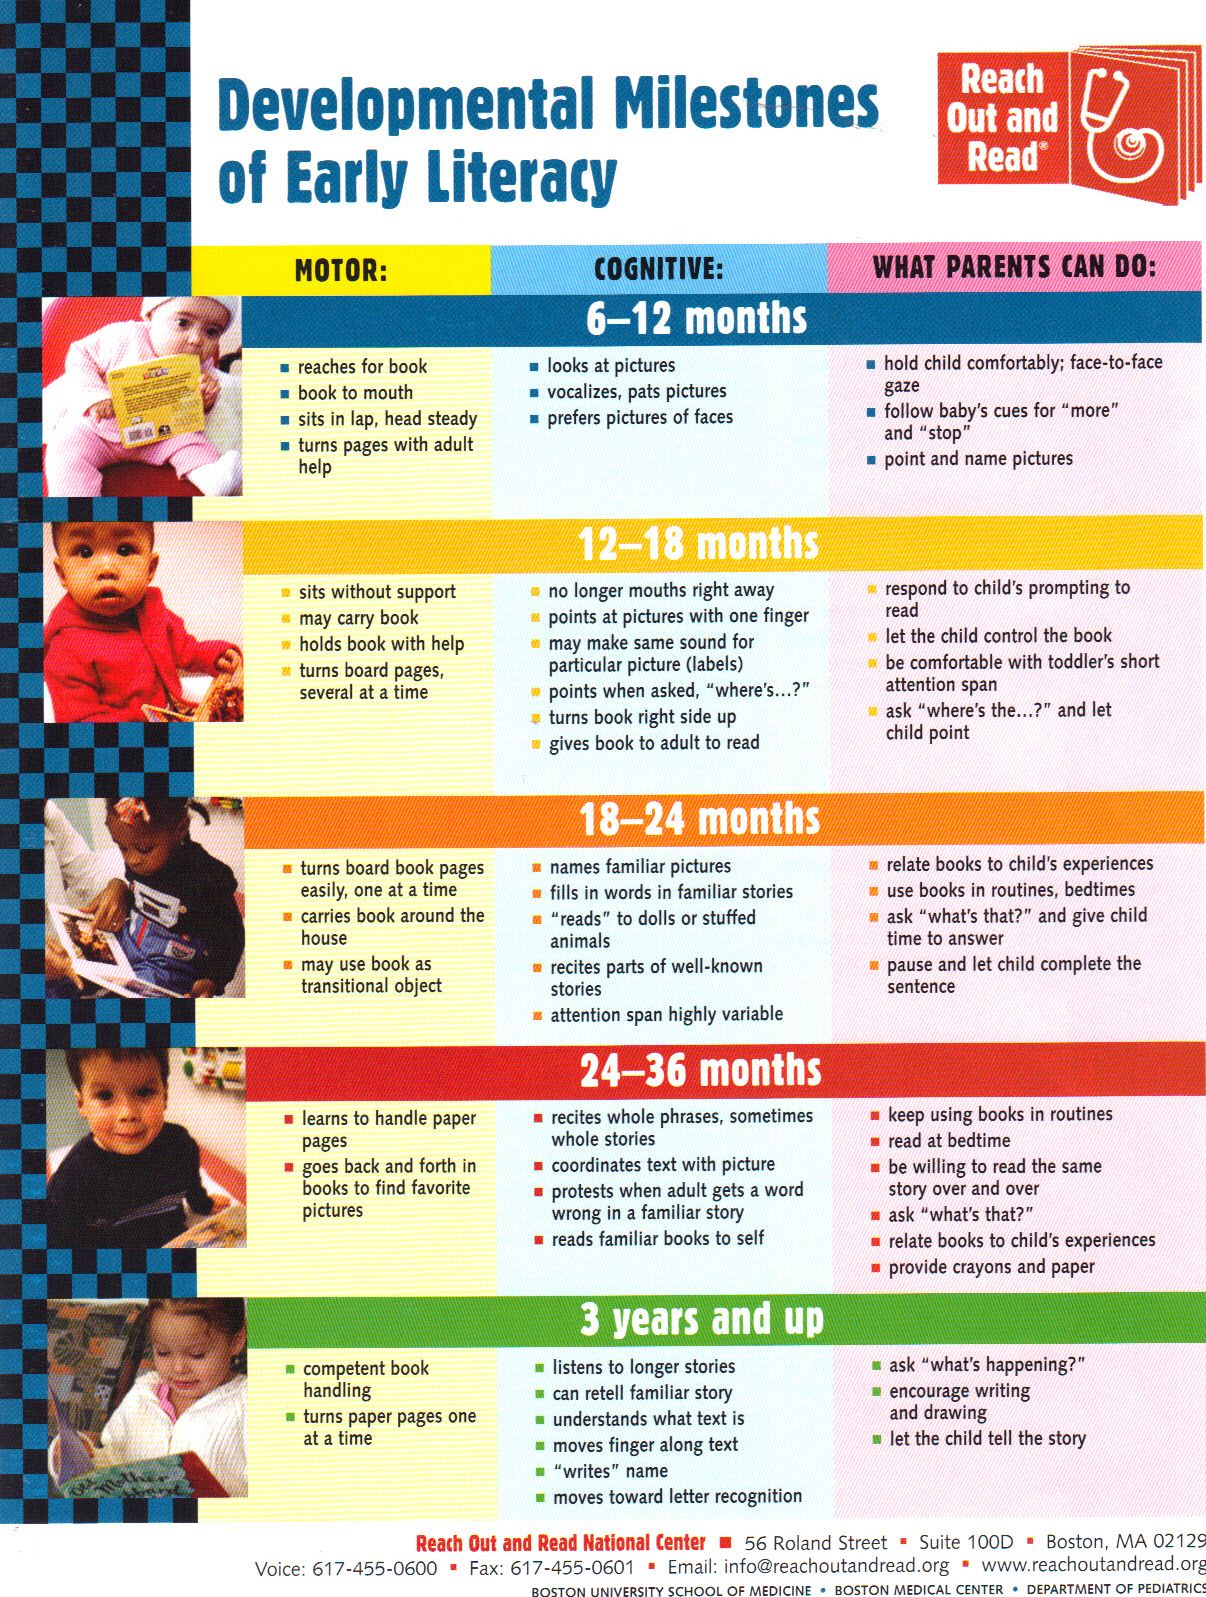 Developmental Milestones Of Early Literacy From Reach Out